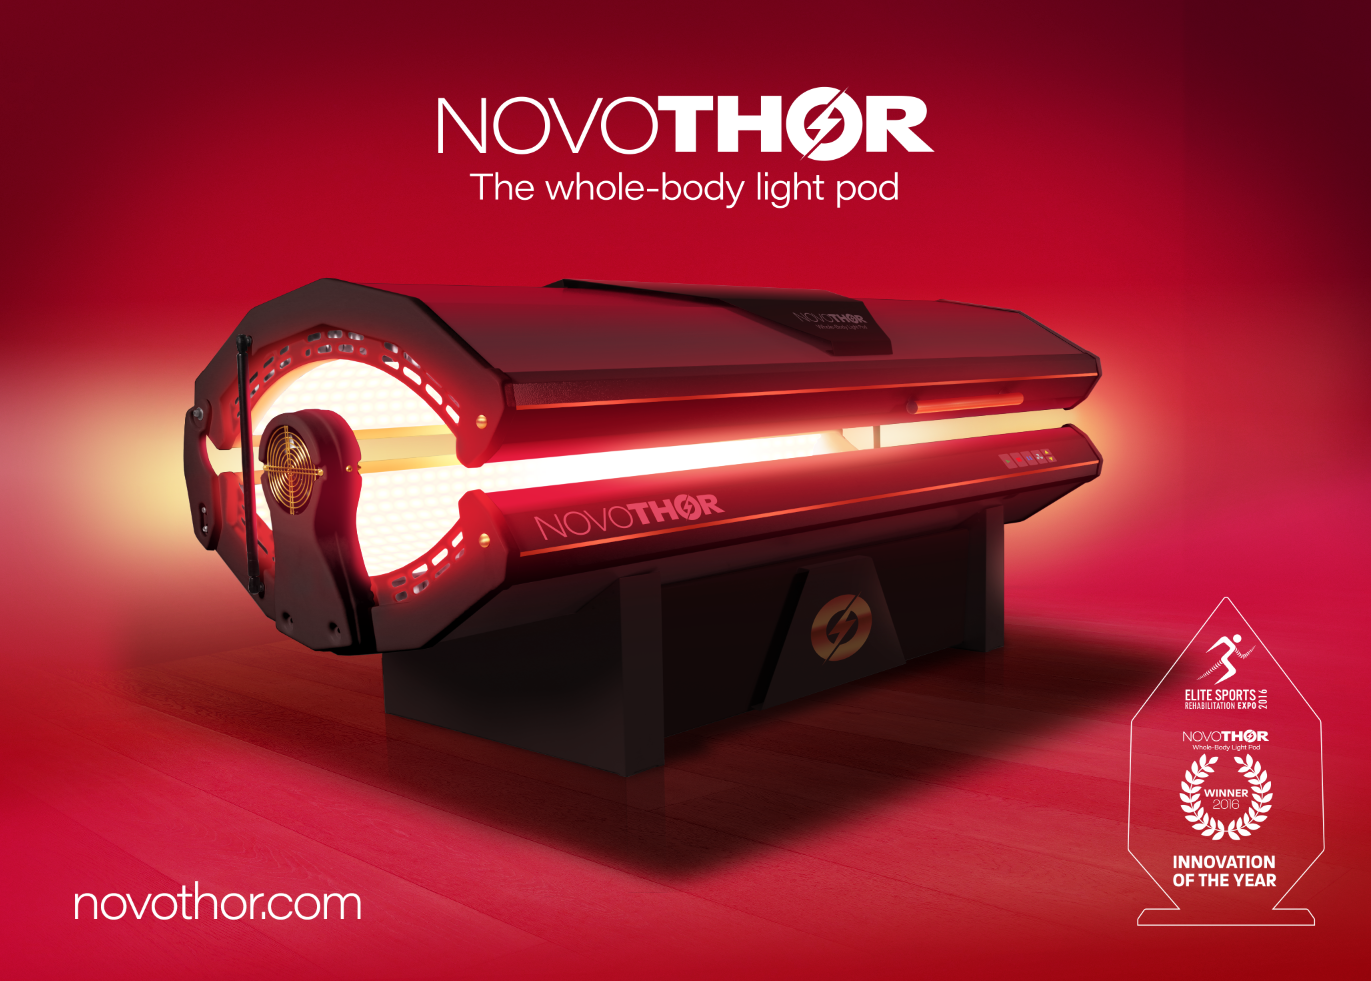 Award-Winning NovoTHOR